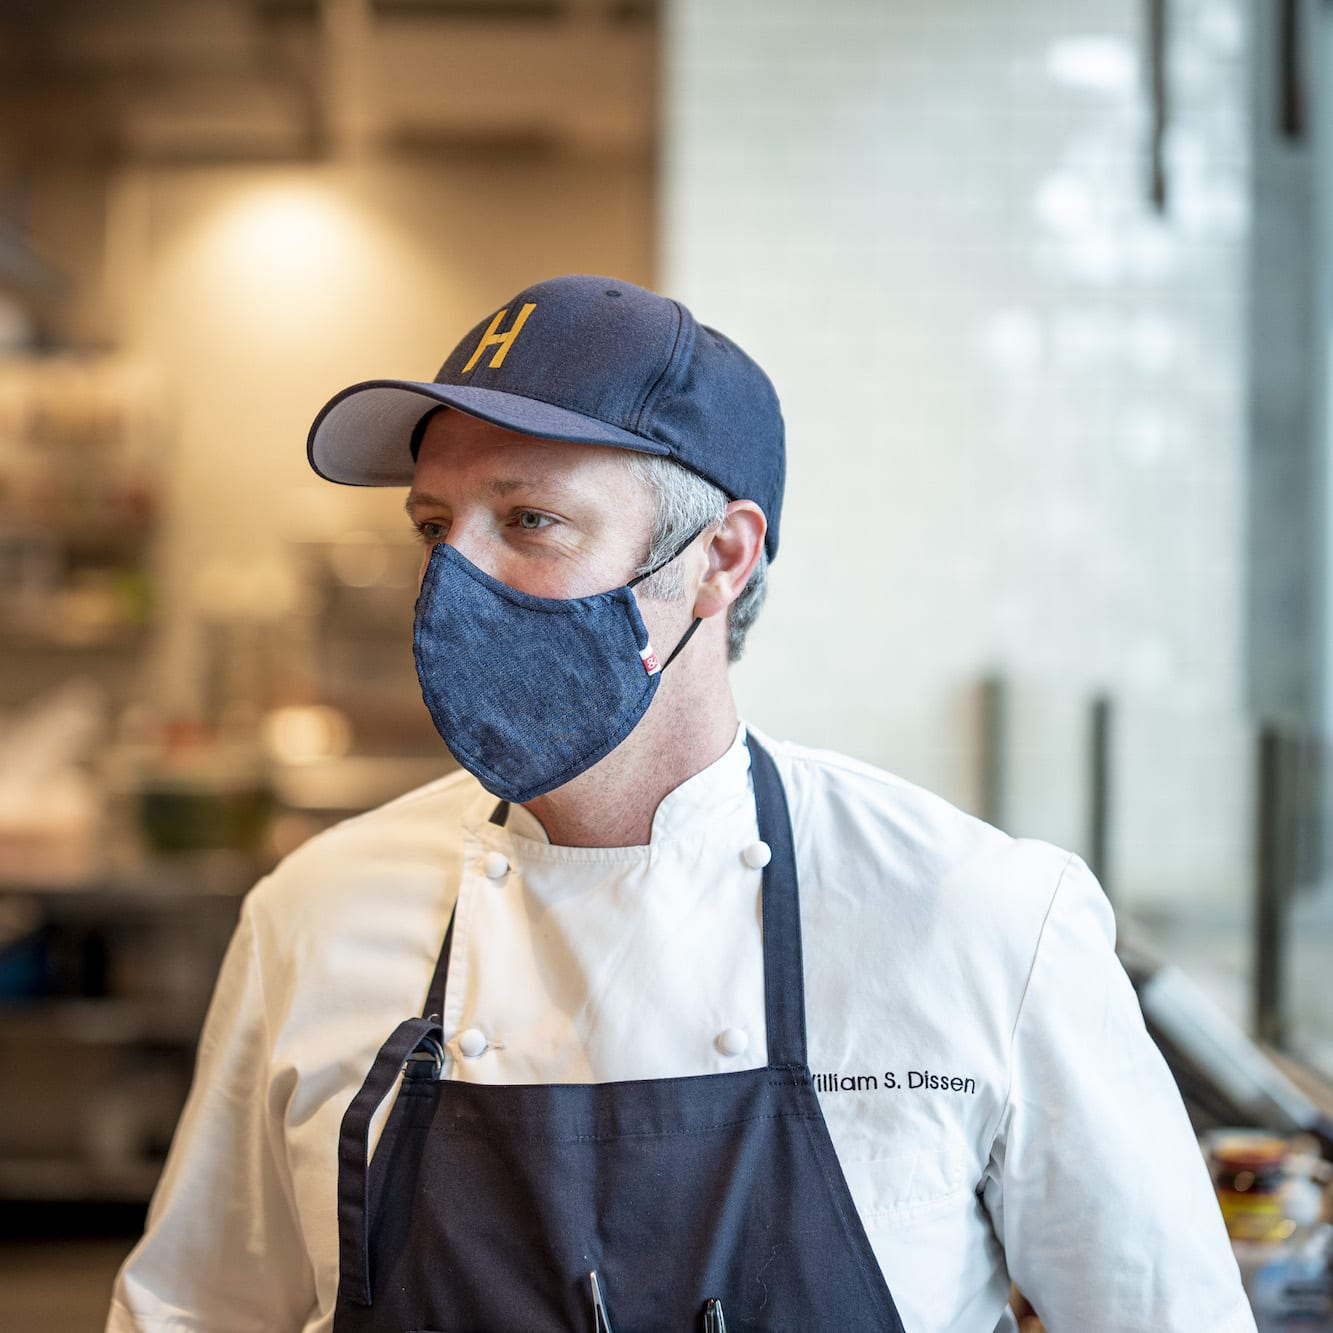 Appalachian Mentality Motivates Chef's Thoughtful Leadership